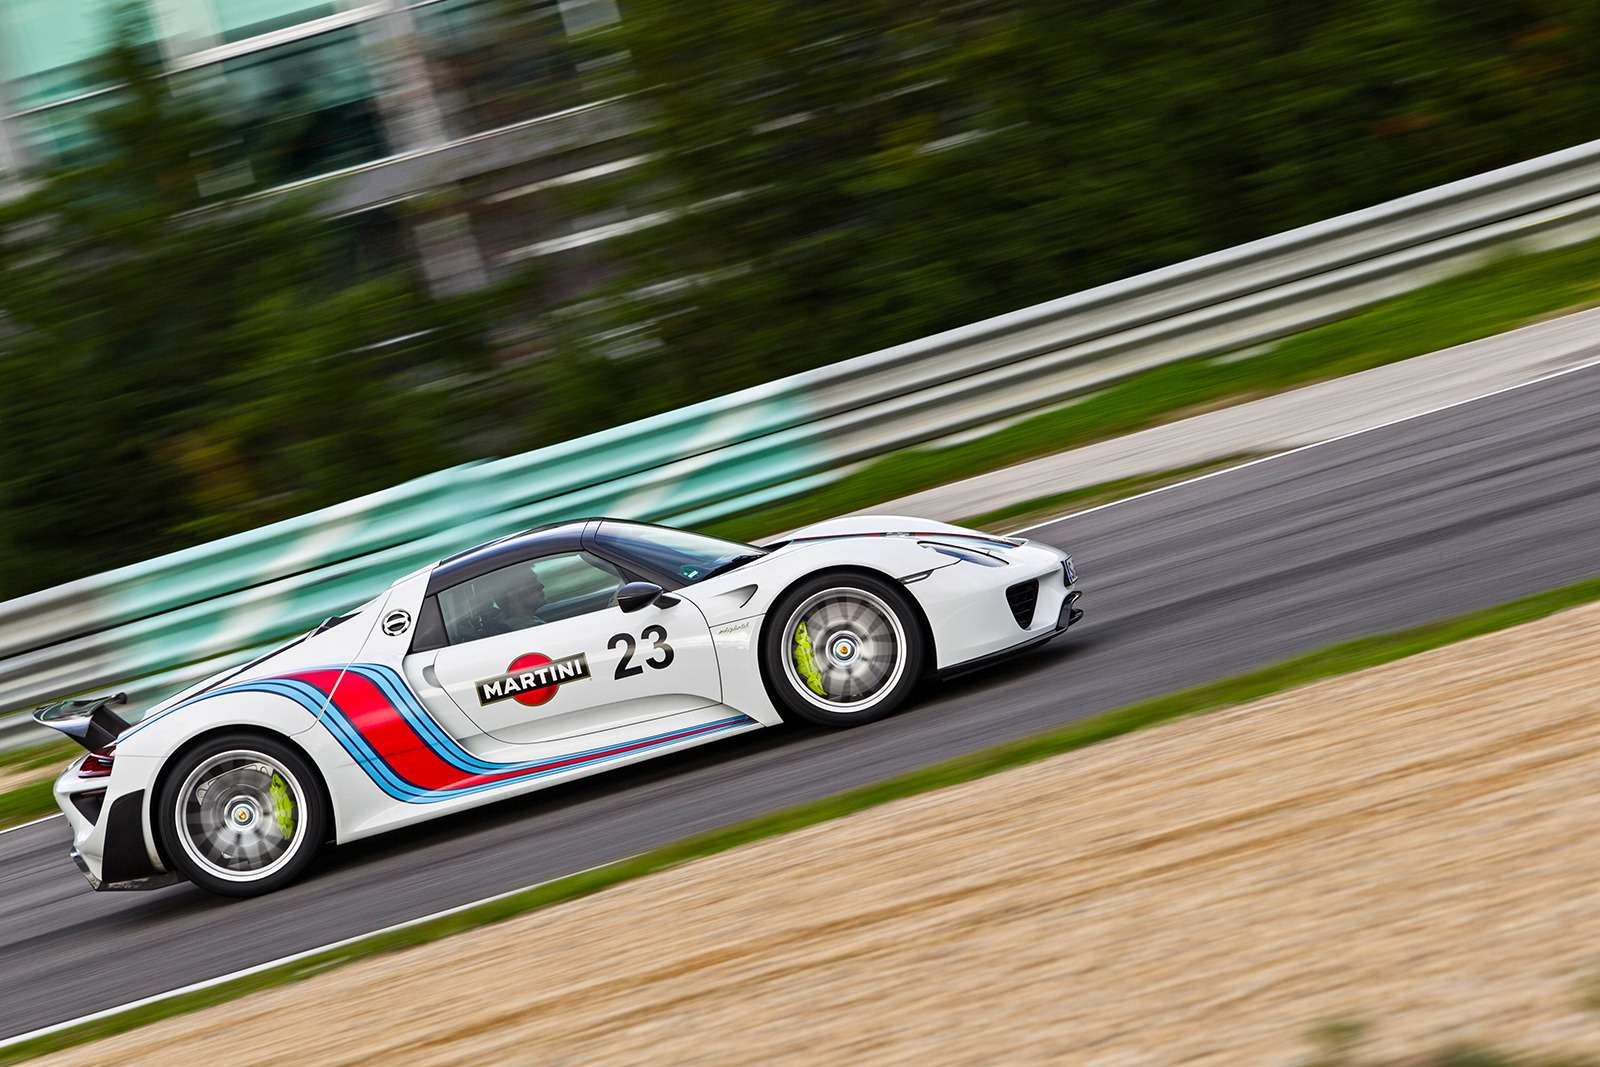 04 Porsche 918 Spyder Estoril_zr 02_15